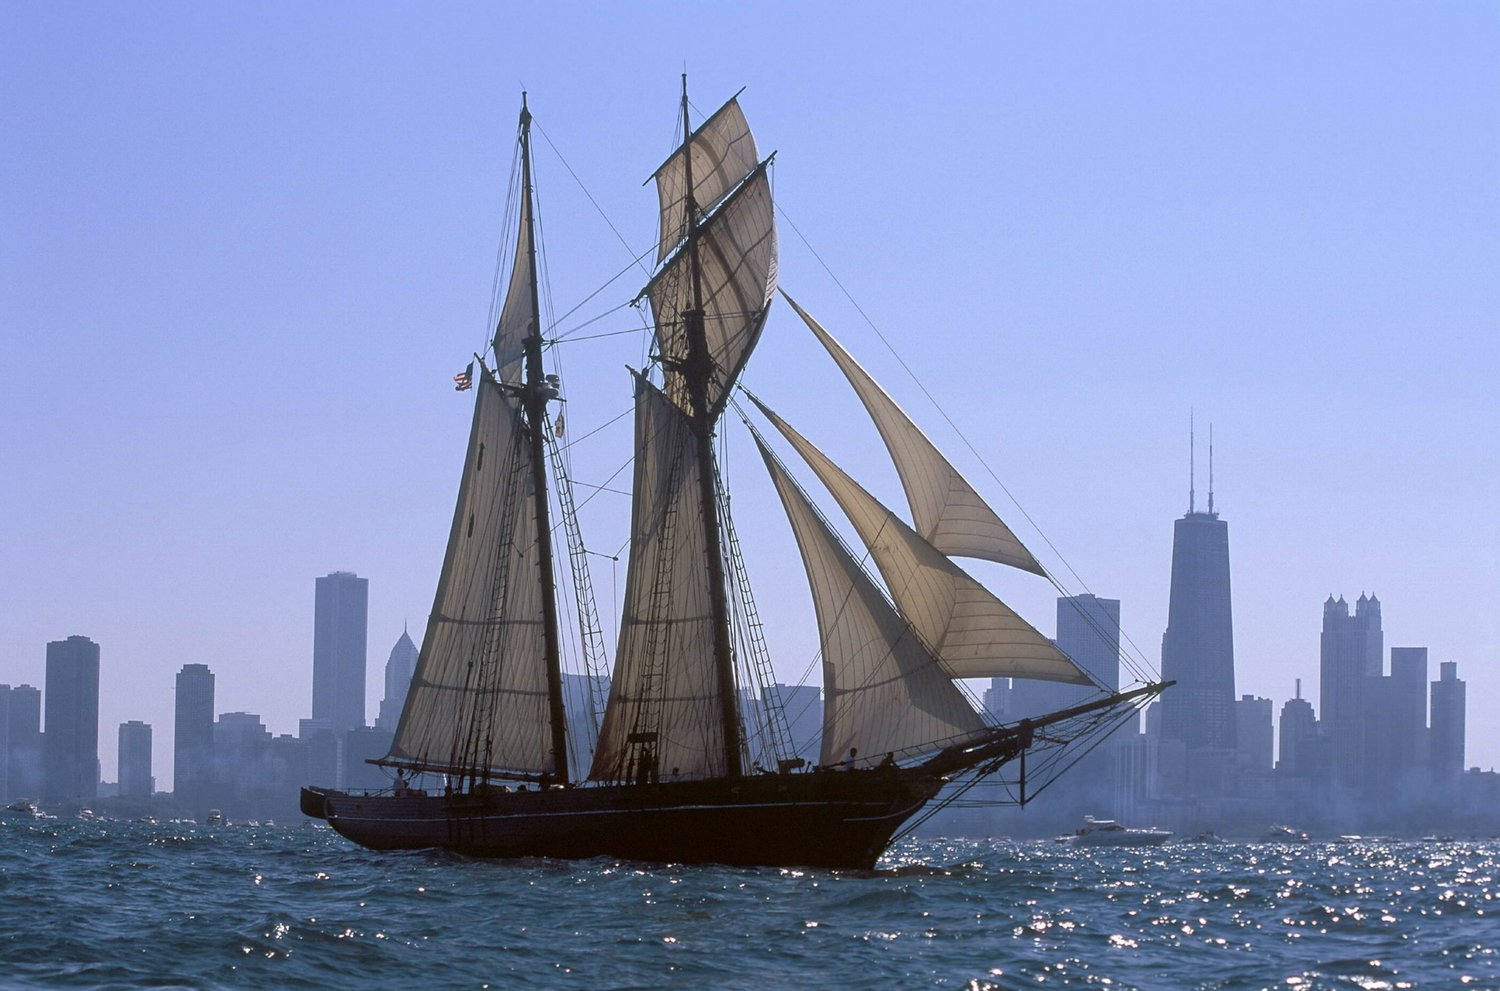 Amistad America will be visiting Oyster Bay July 11 through July 12.